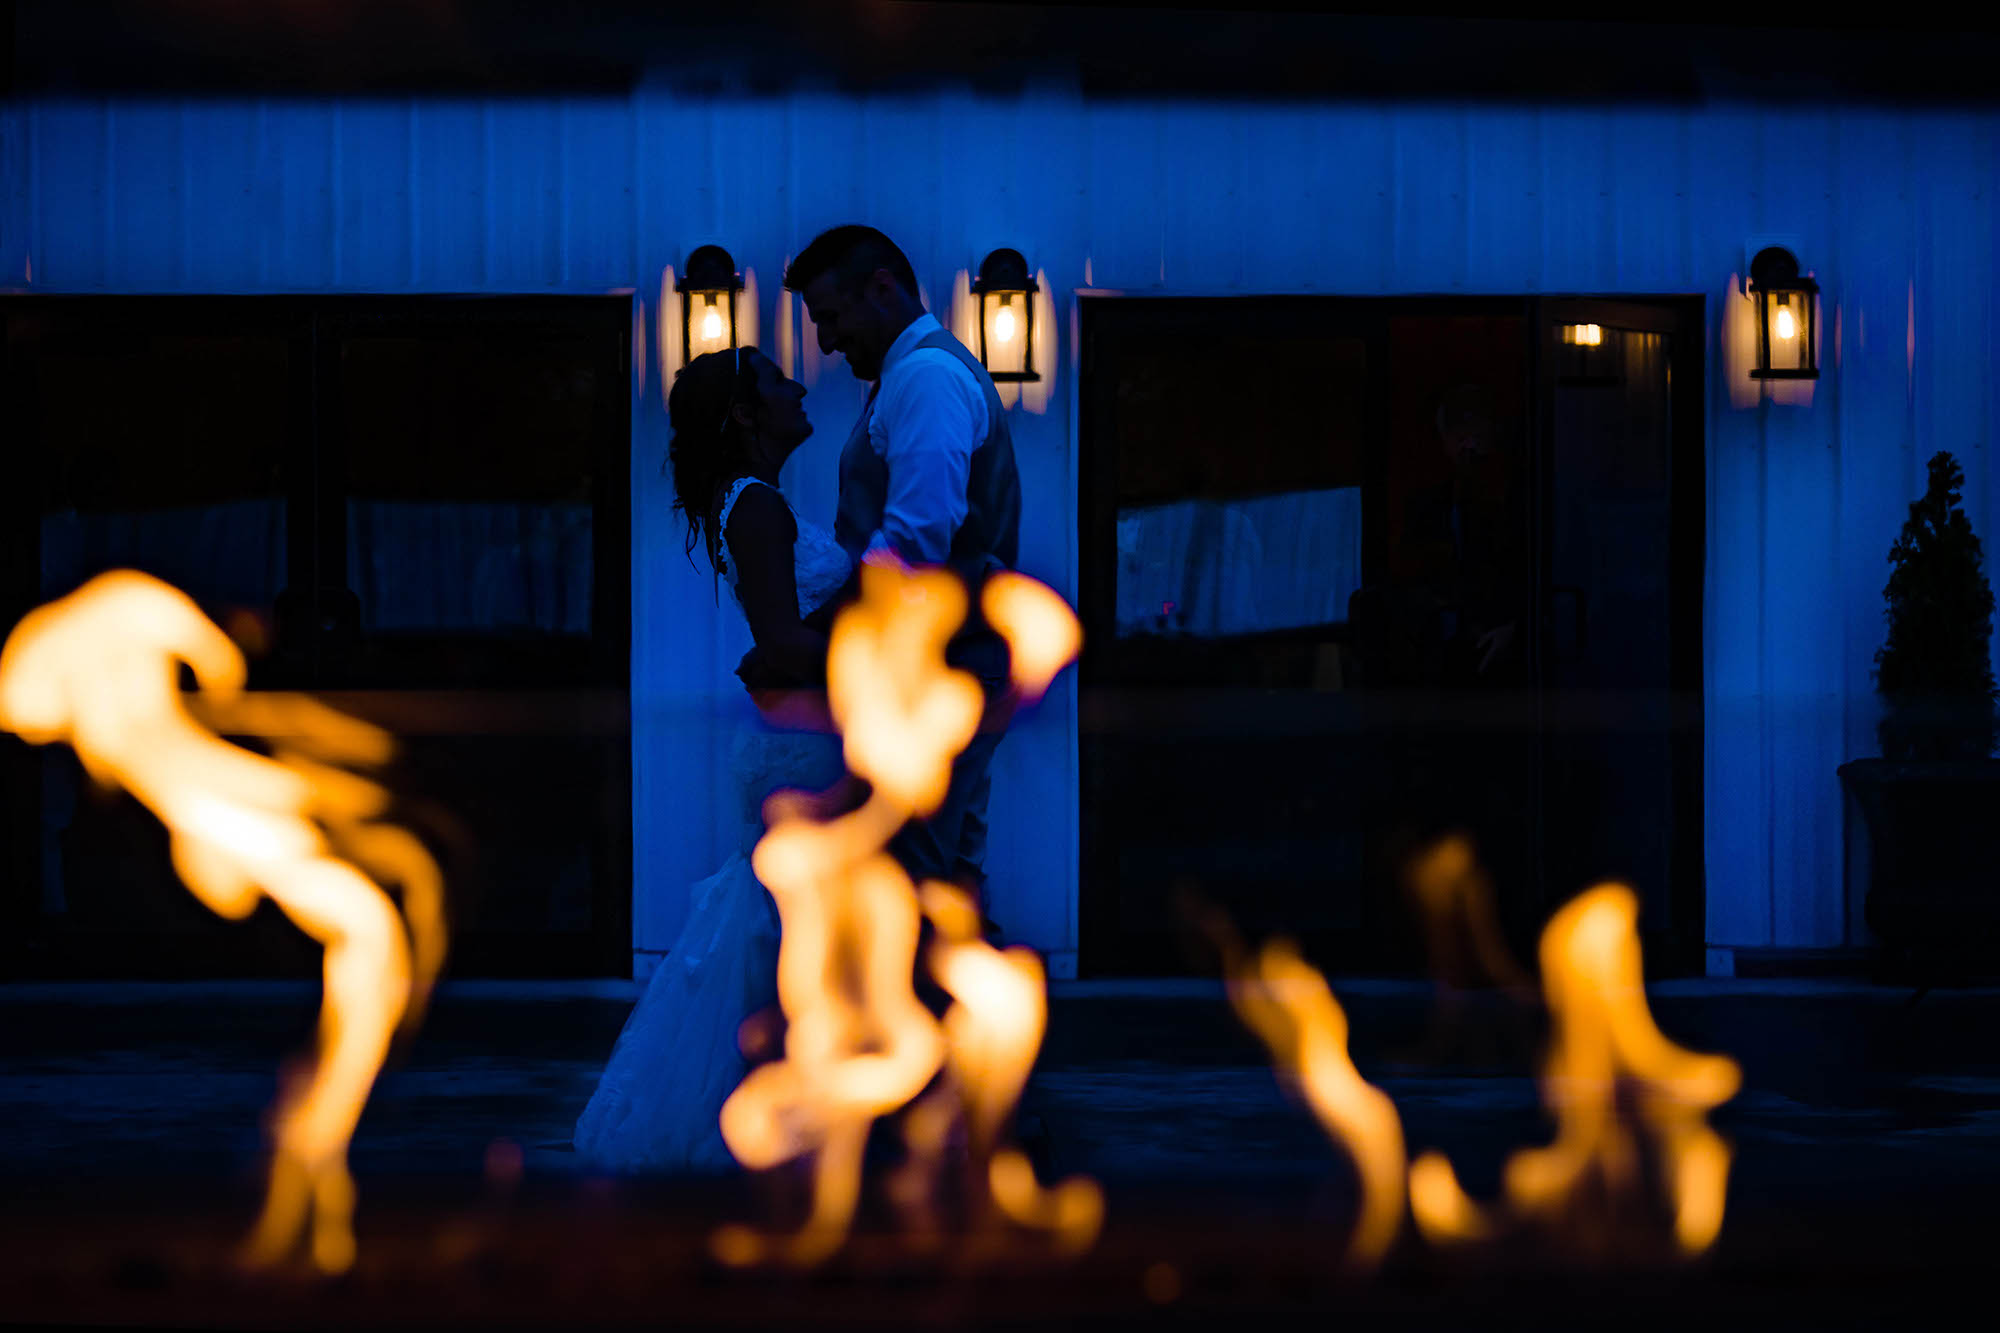 Warm and cool tones for this bride and groom at the end of their reception at Rustic Ridge Wedding Barn New Philadelphia, Ohio.